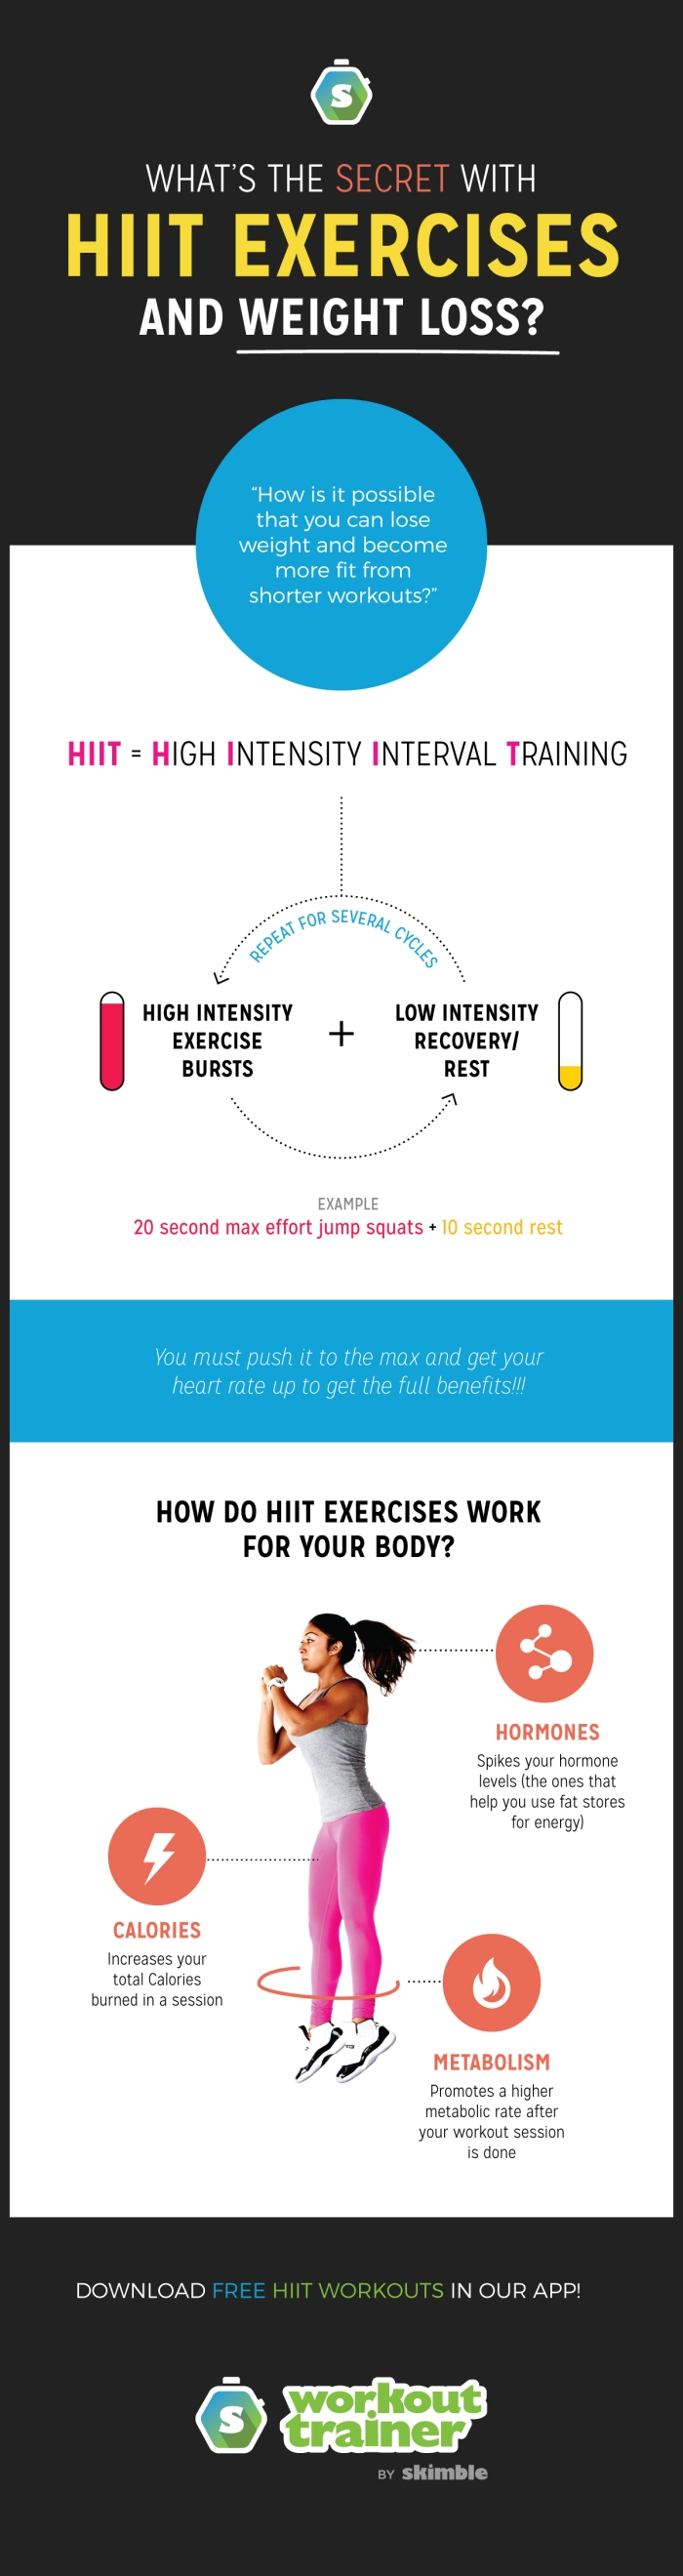 The Secret With HIIT Exercises and Weight Loss